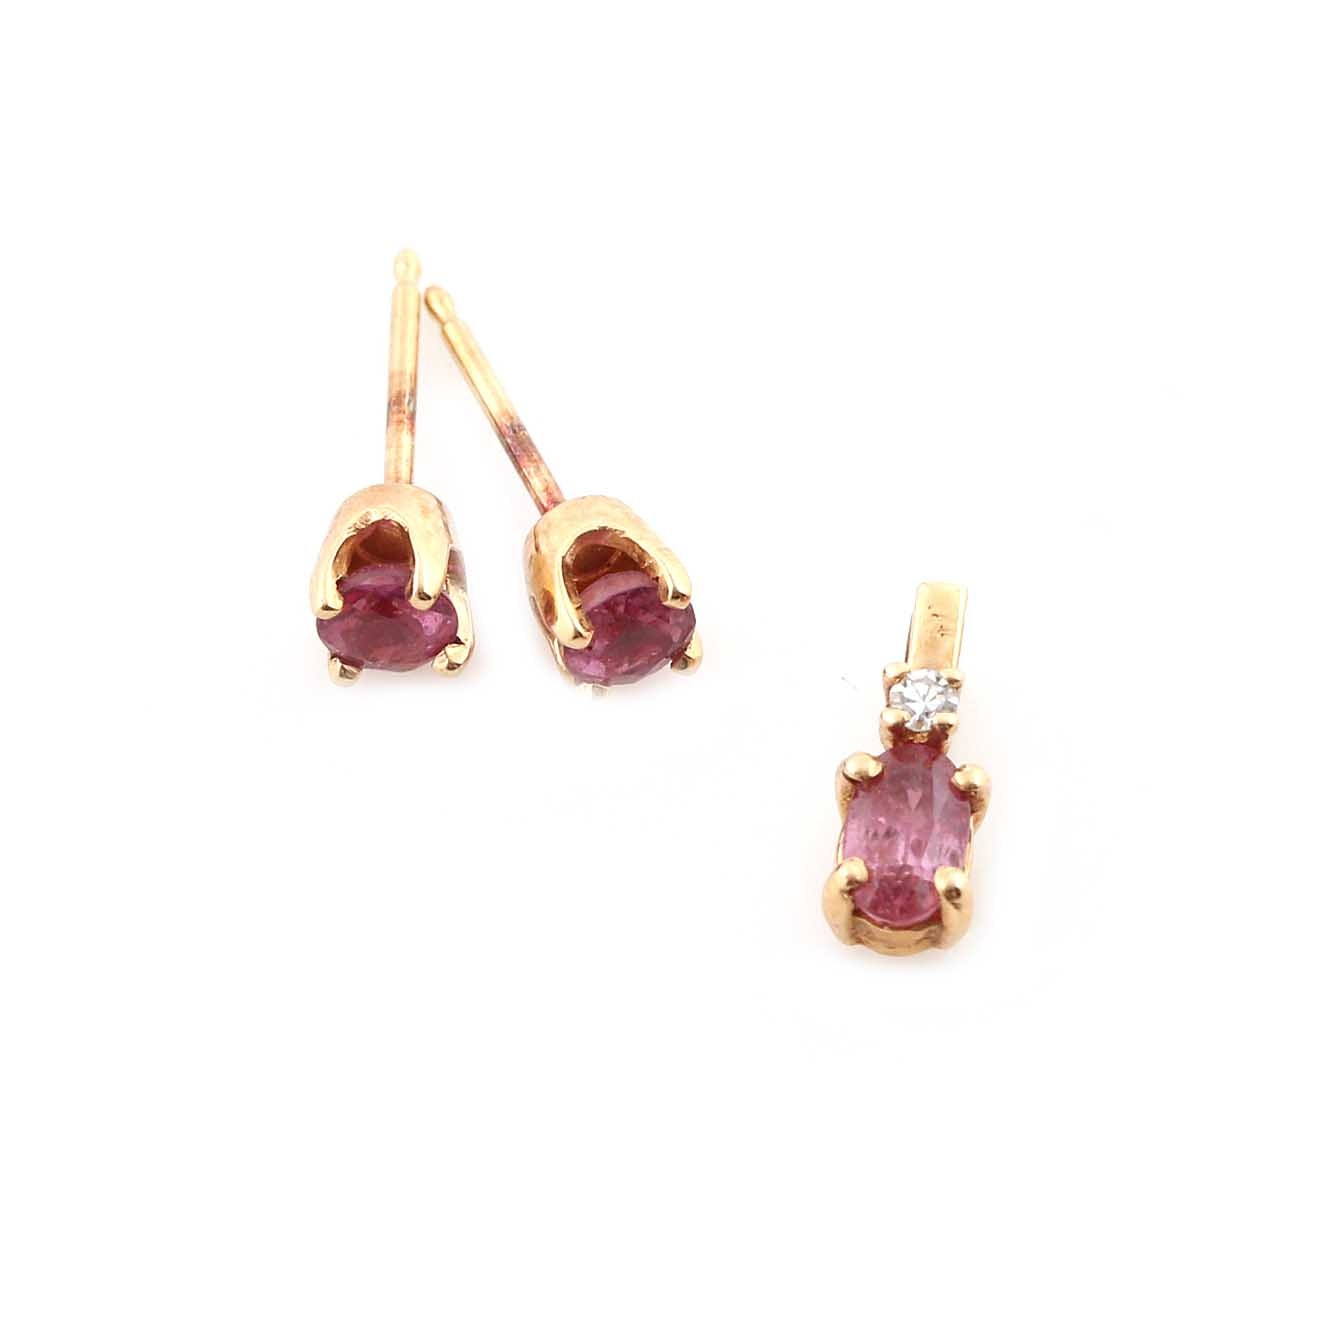 14K Yellow Gold Ruby Earrings and Pendant